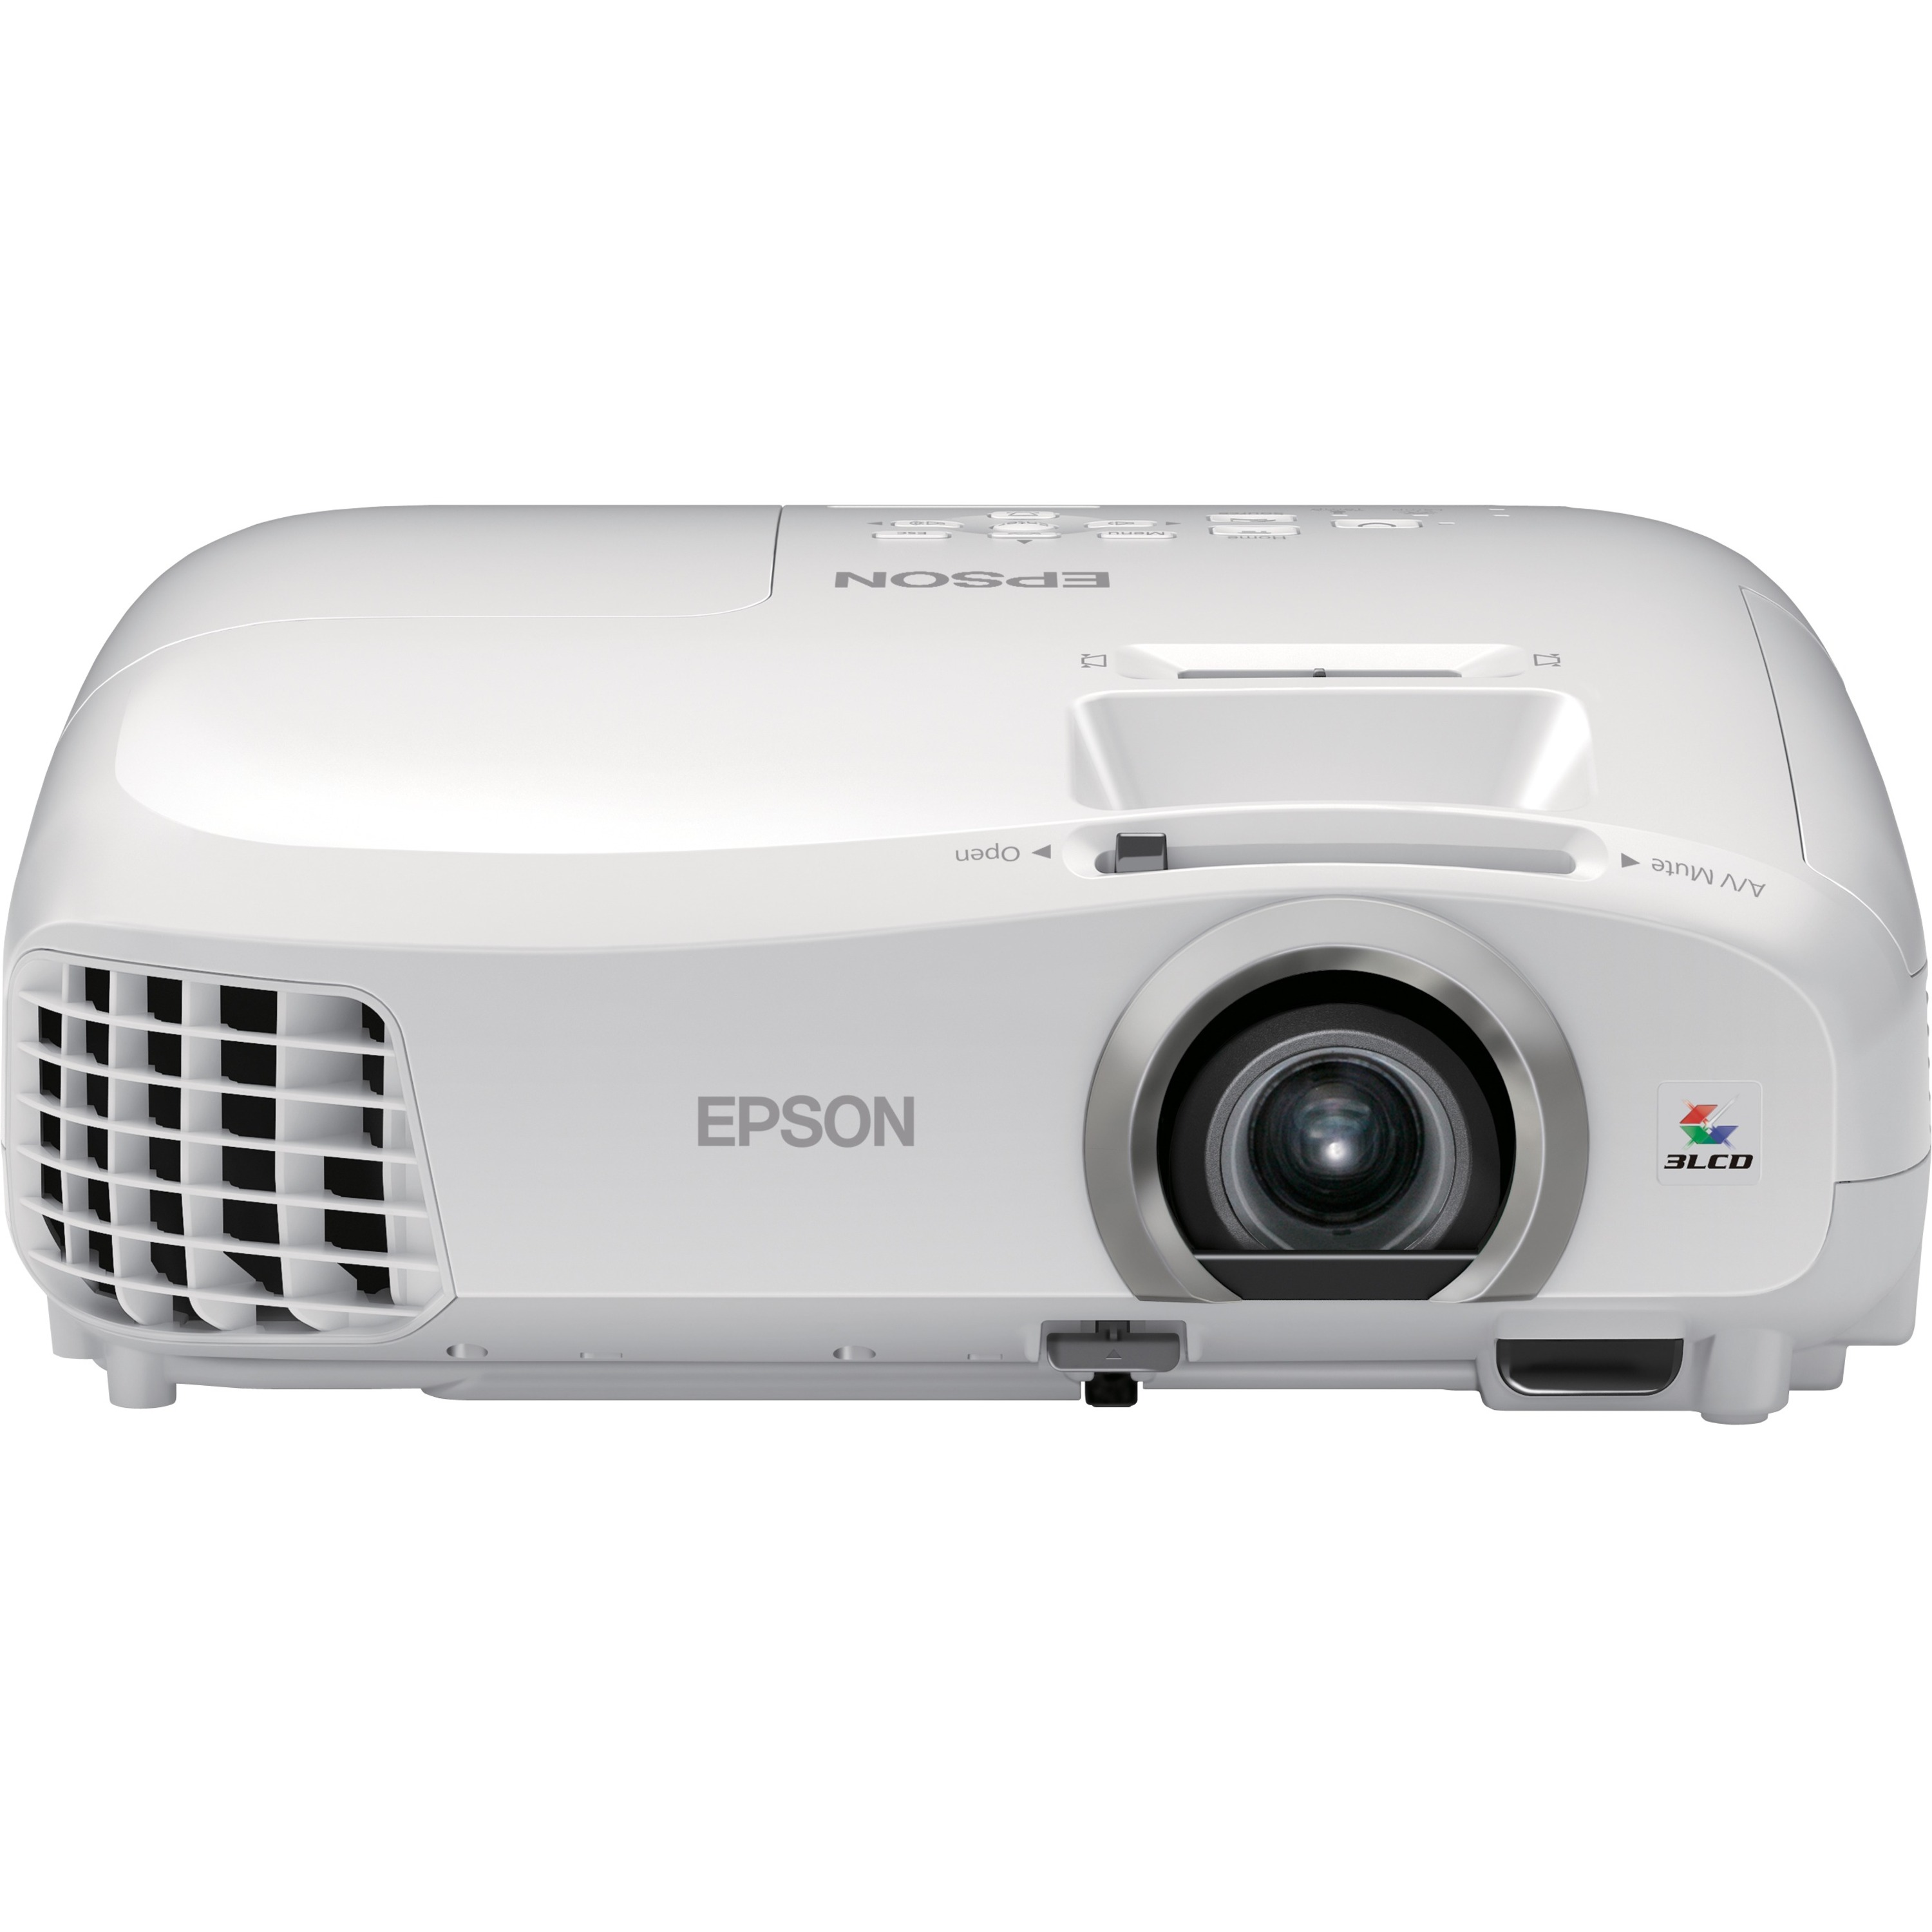 Epson EH-TW5300 3D LCD Projector - 1080p - HDTV - 16:9